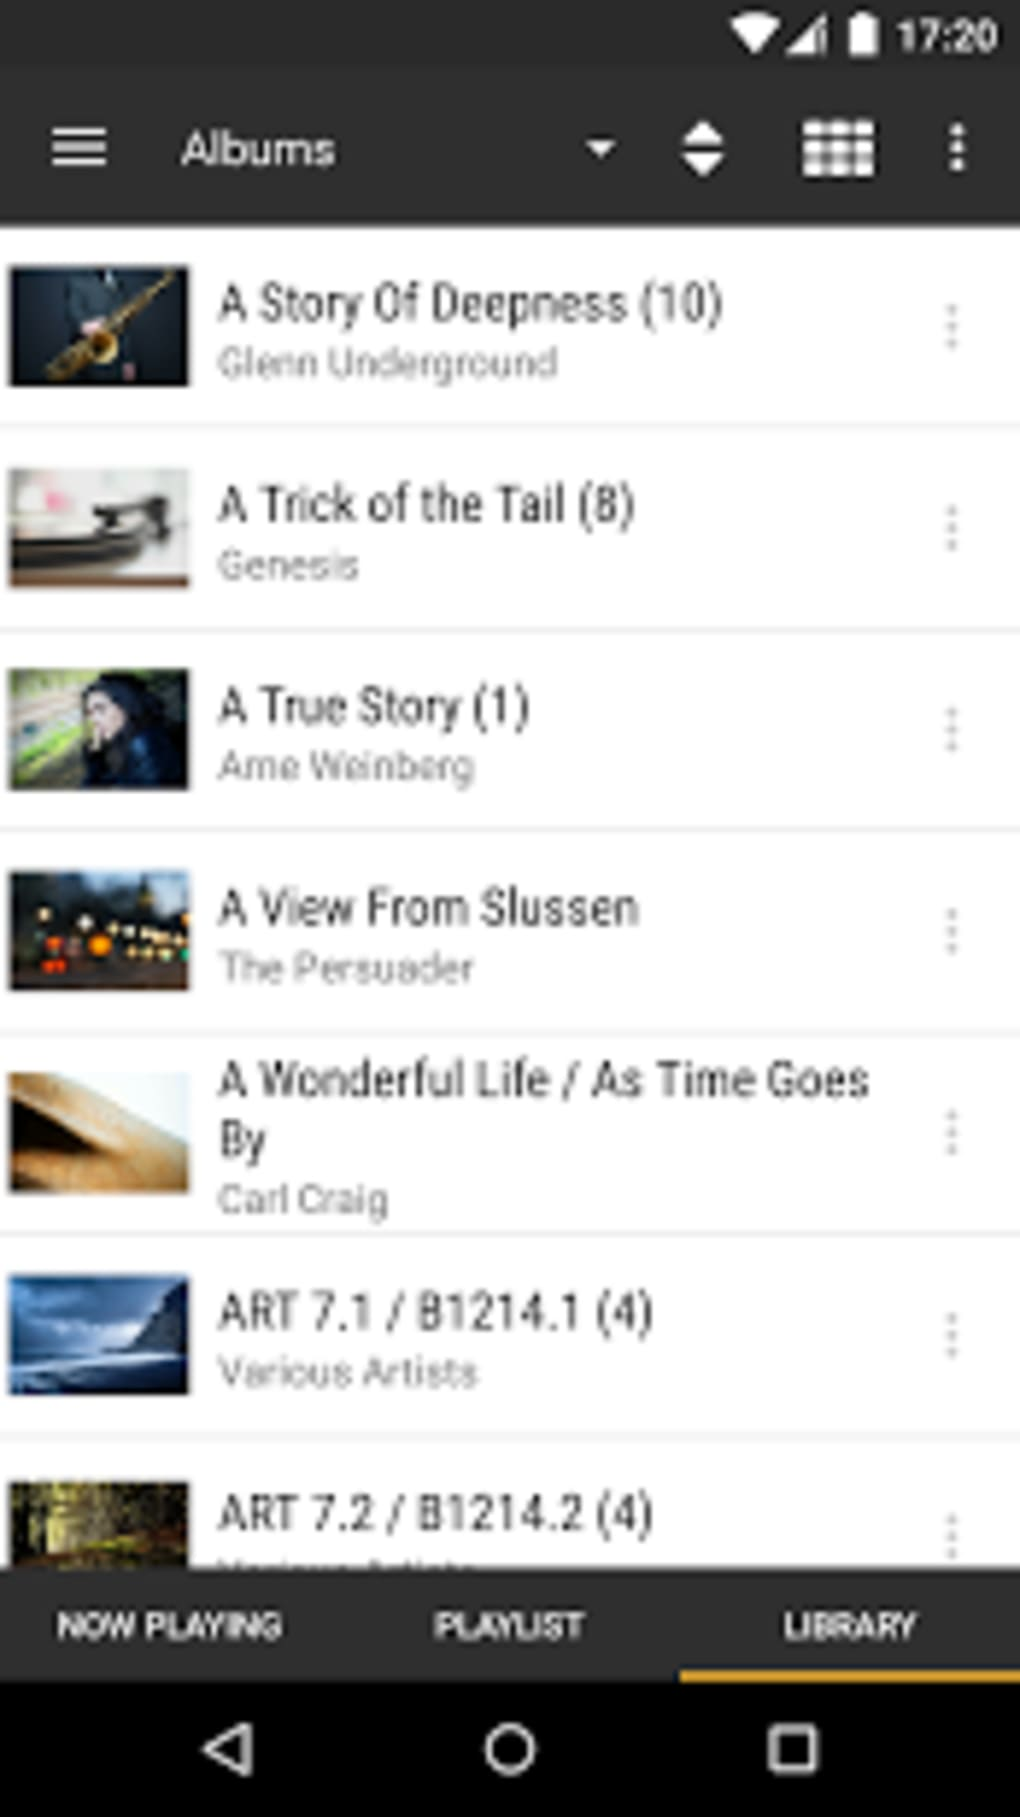 BubbleUPnP for DLNA/Chromecast for Android - Download